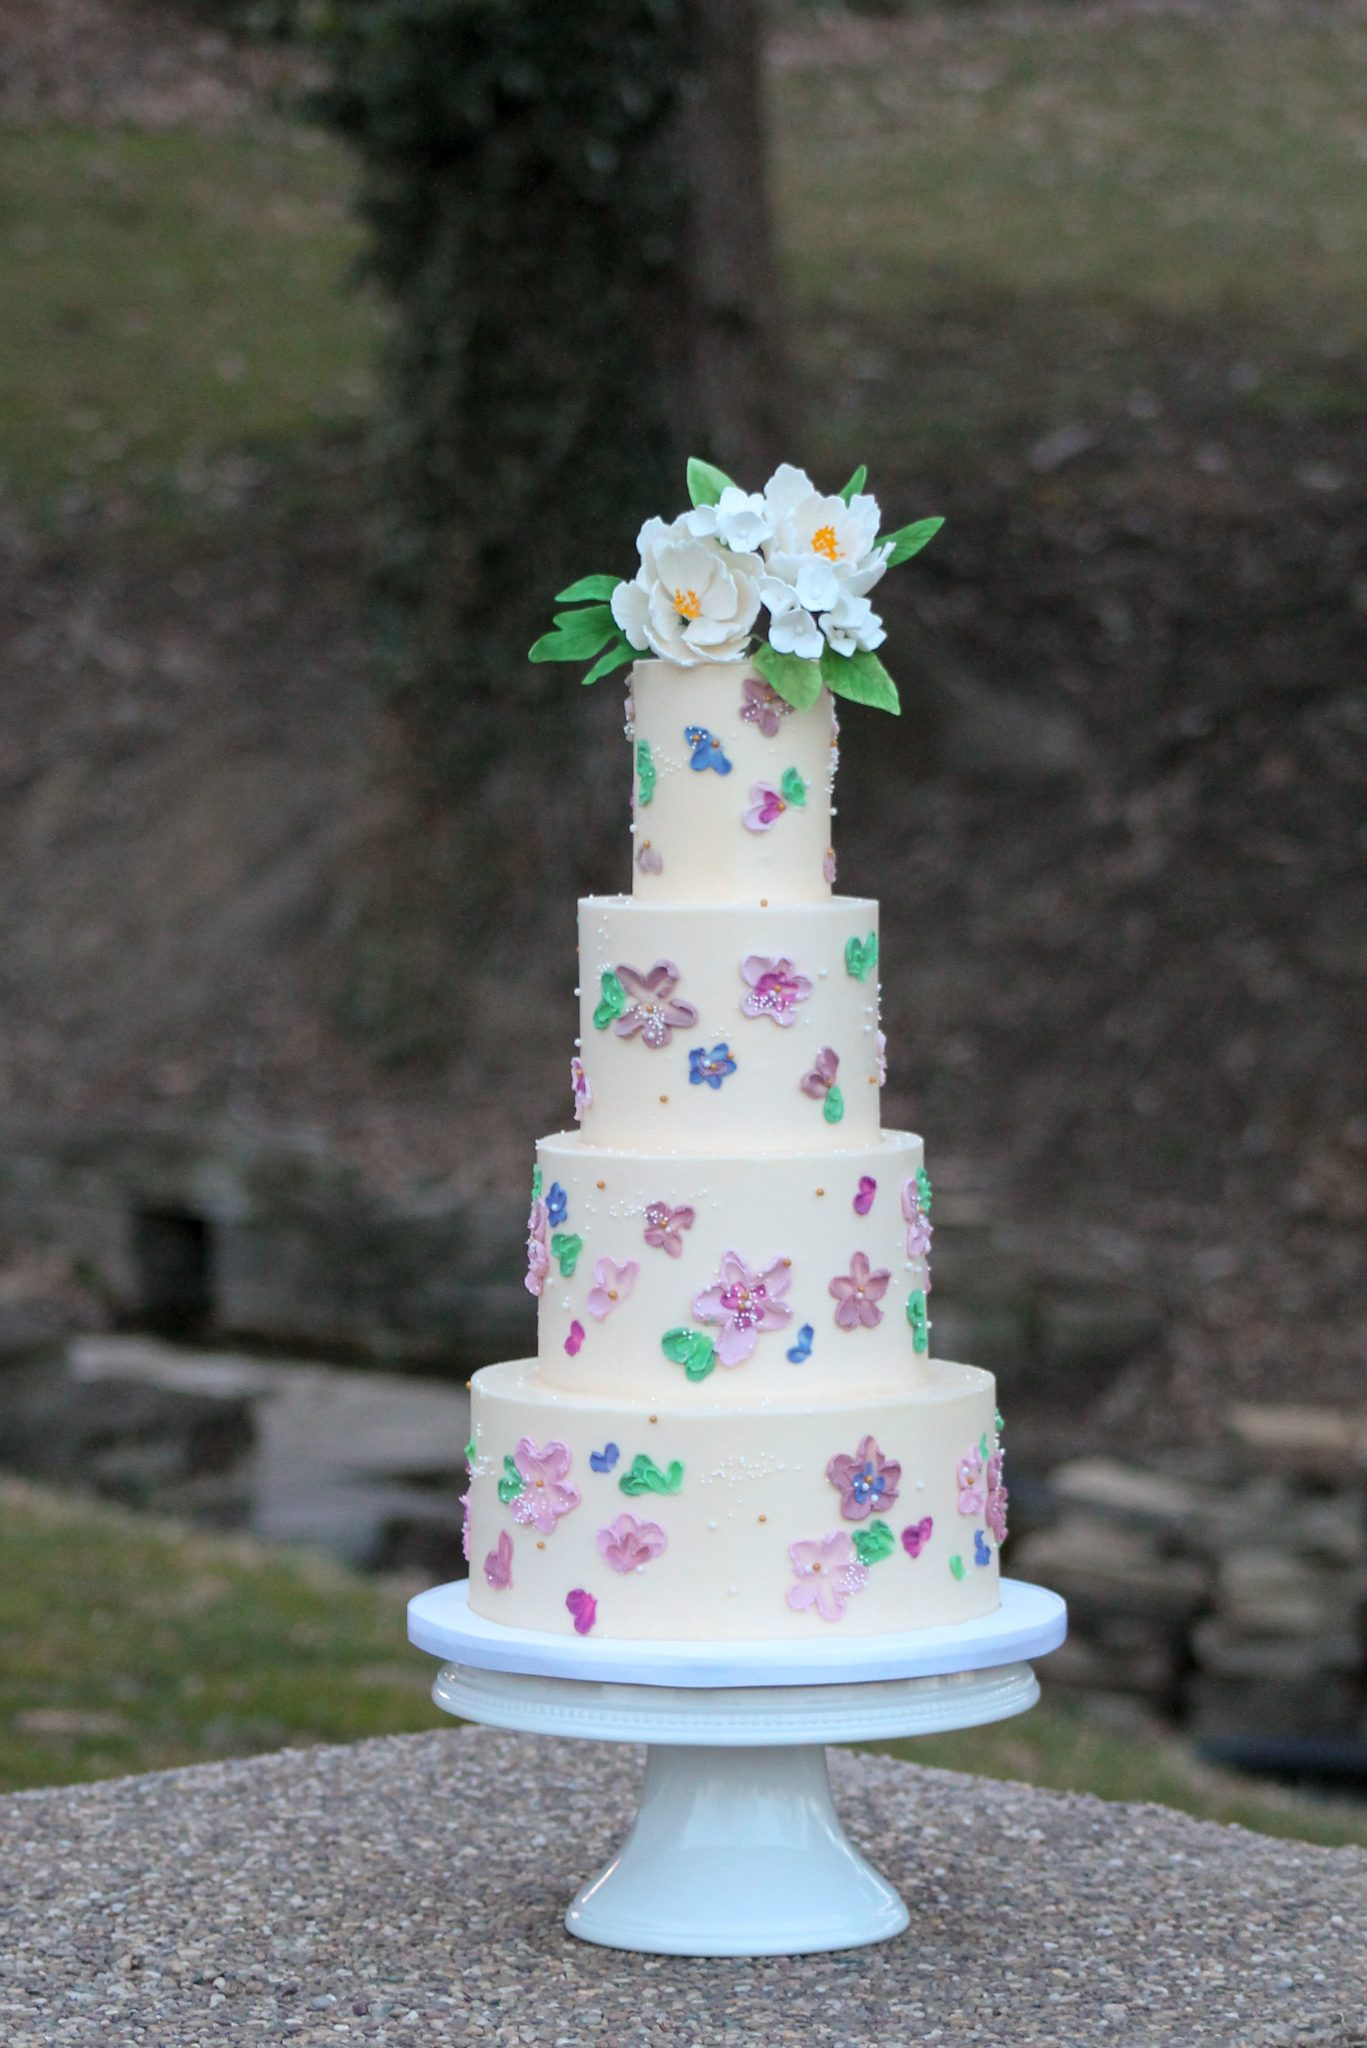 Tiered-painted-buttercream-floral-wedding-cake-with-white-sugar-flowers-from-Four-Oaks-Bakery-in-Pittsburgh-PA